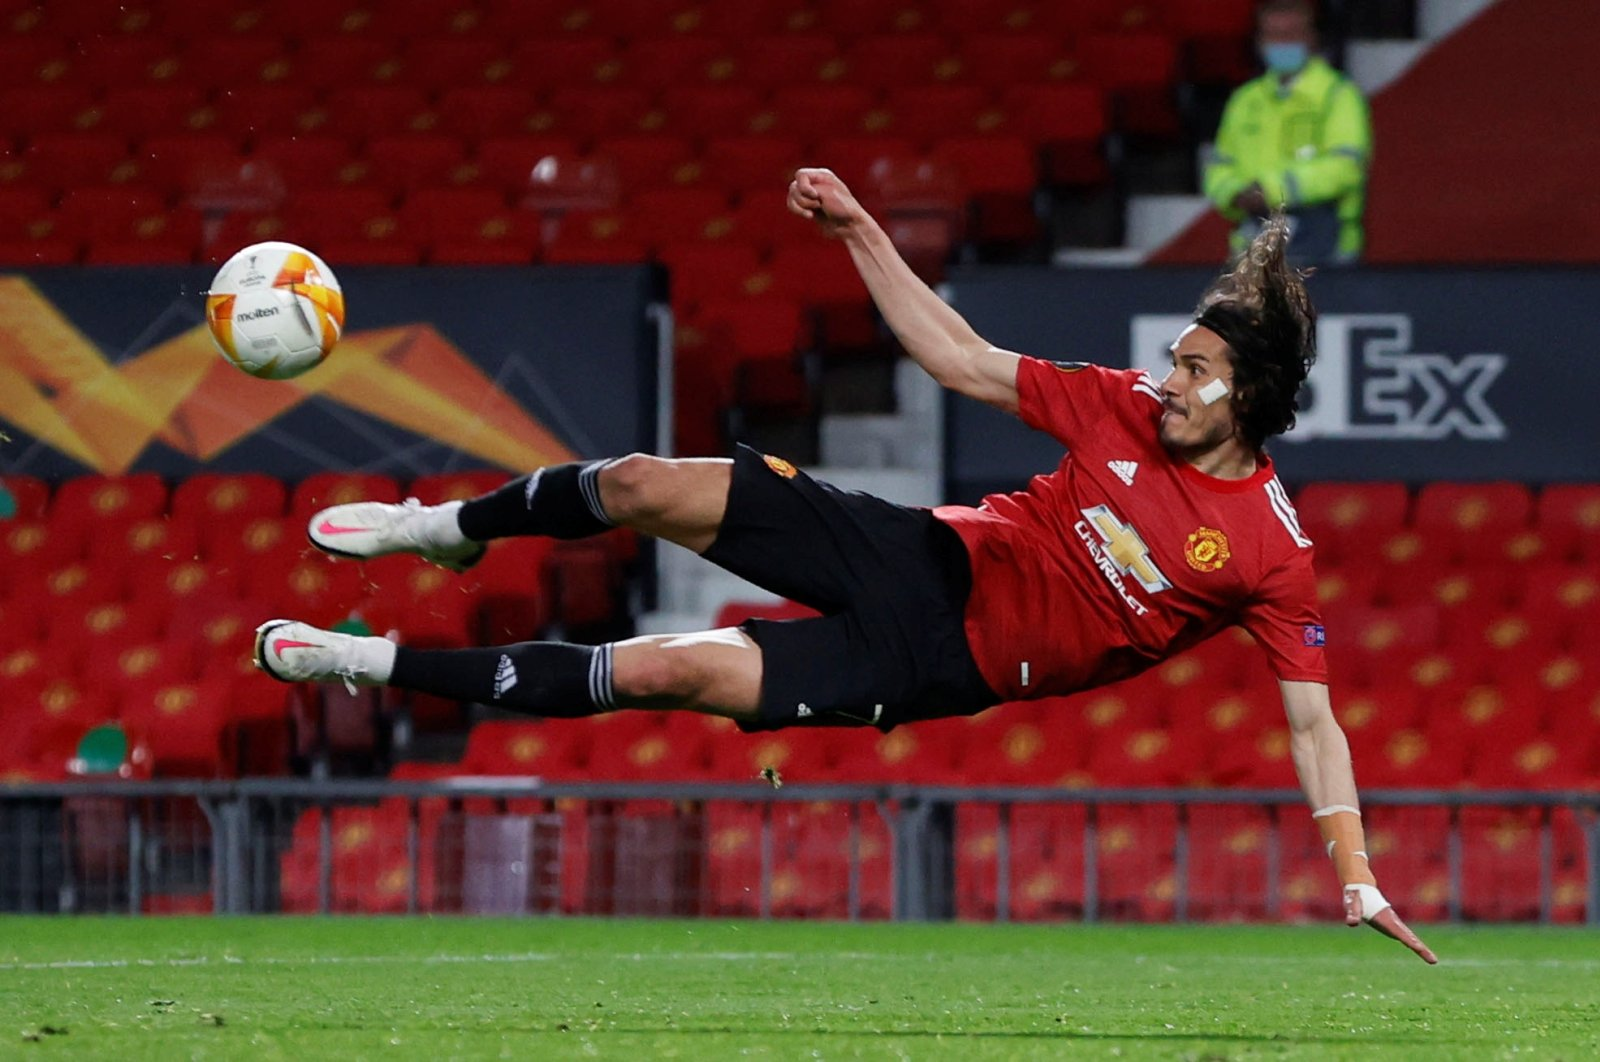 Manchester United's Edinson Cavani shoots at goal during a Europa League semifinal, first leg match against AS Roma at Old Trafford, Manchester, Britain, April 29, 2021. (Reuters Photo)